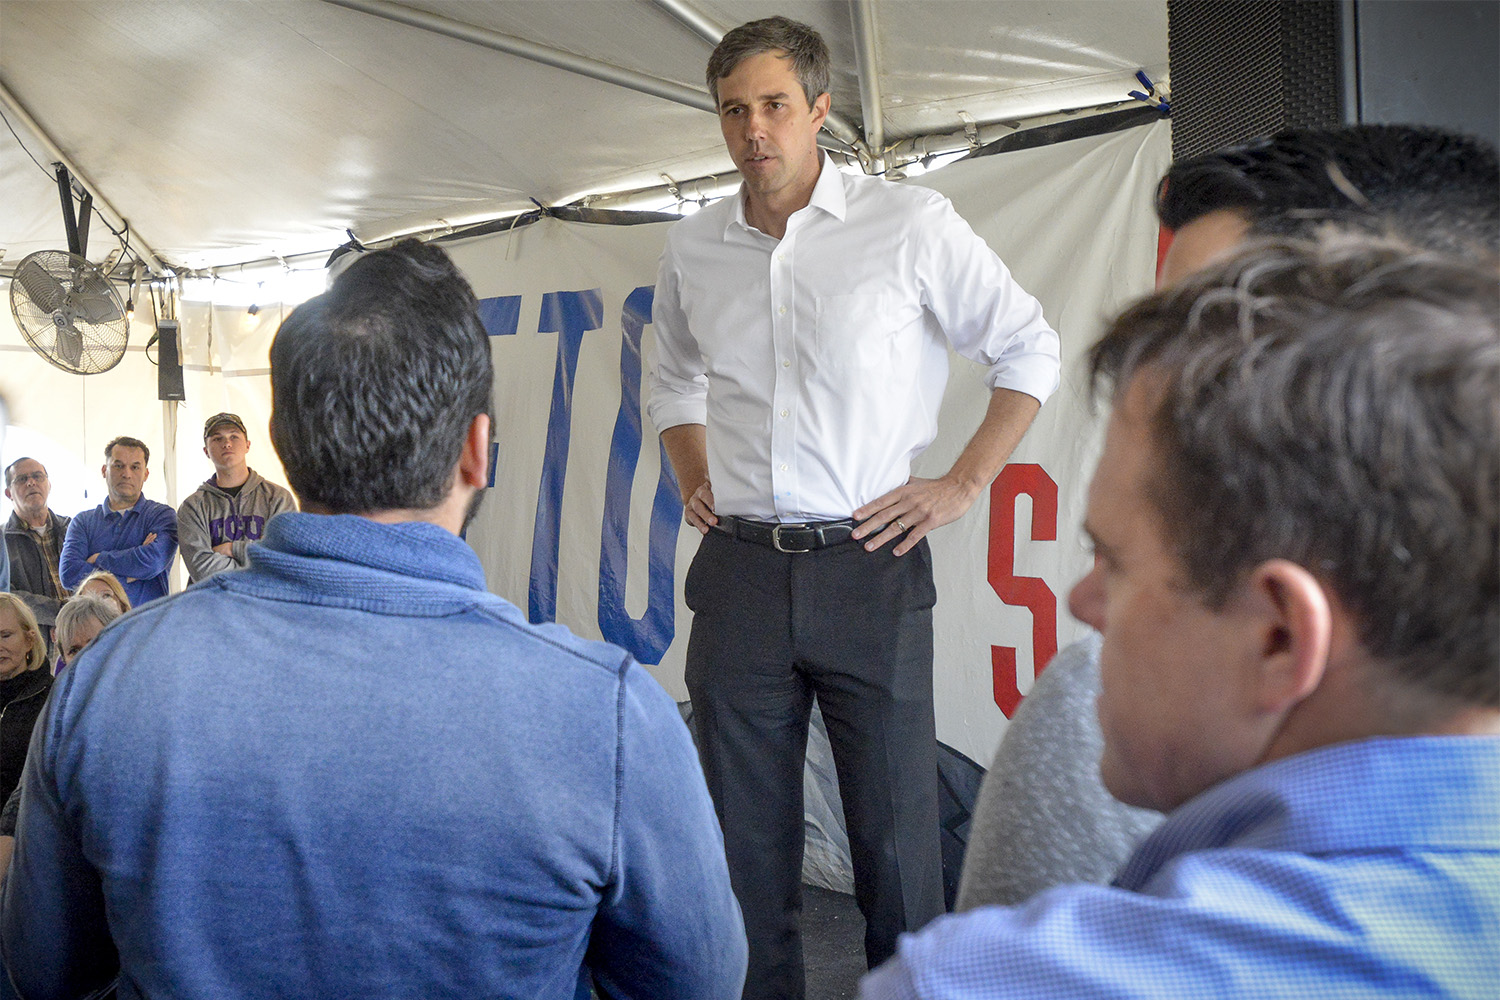 U.S. Rep. Beto O'Rourke, D-El Paso, a Democratic candidate for U.S. Senator, answers questions at a rally and town hall meeting at the Old Texas Brewing Company in Burleson on Saturday Feb. 24, 2018.